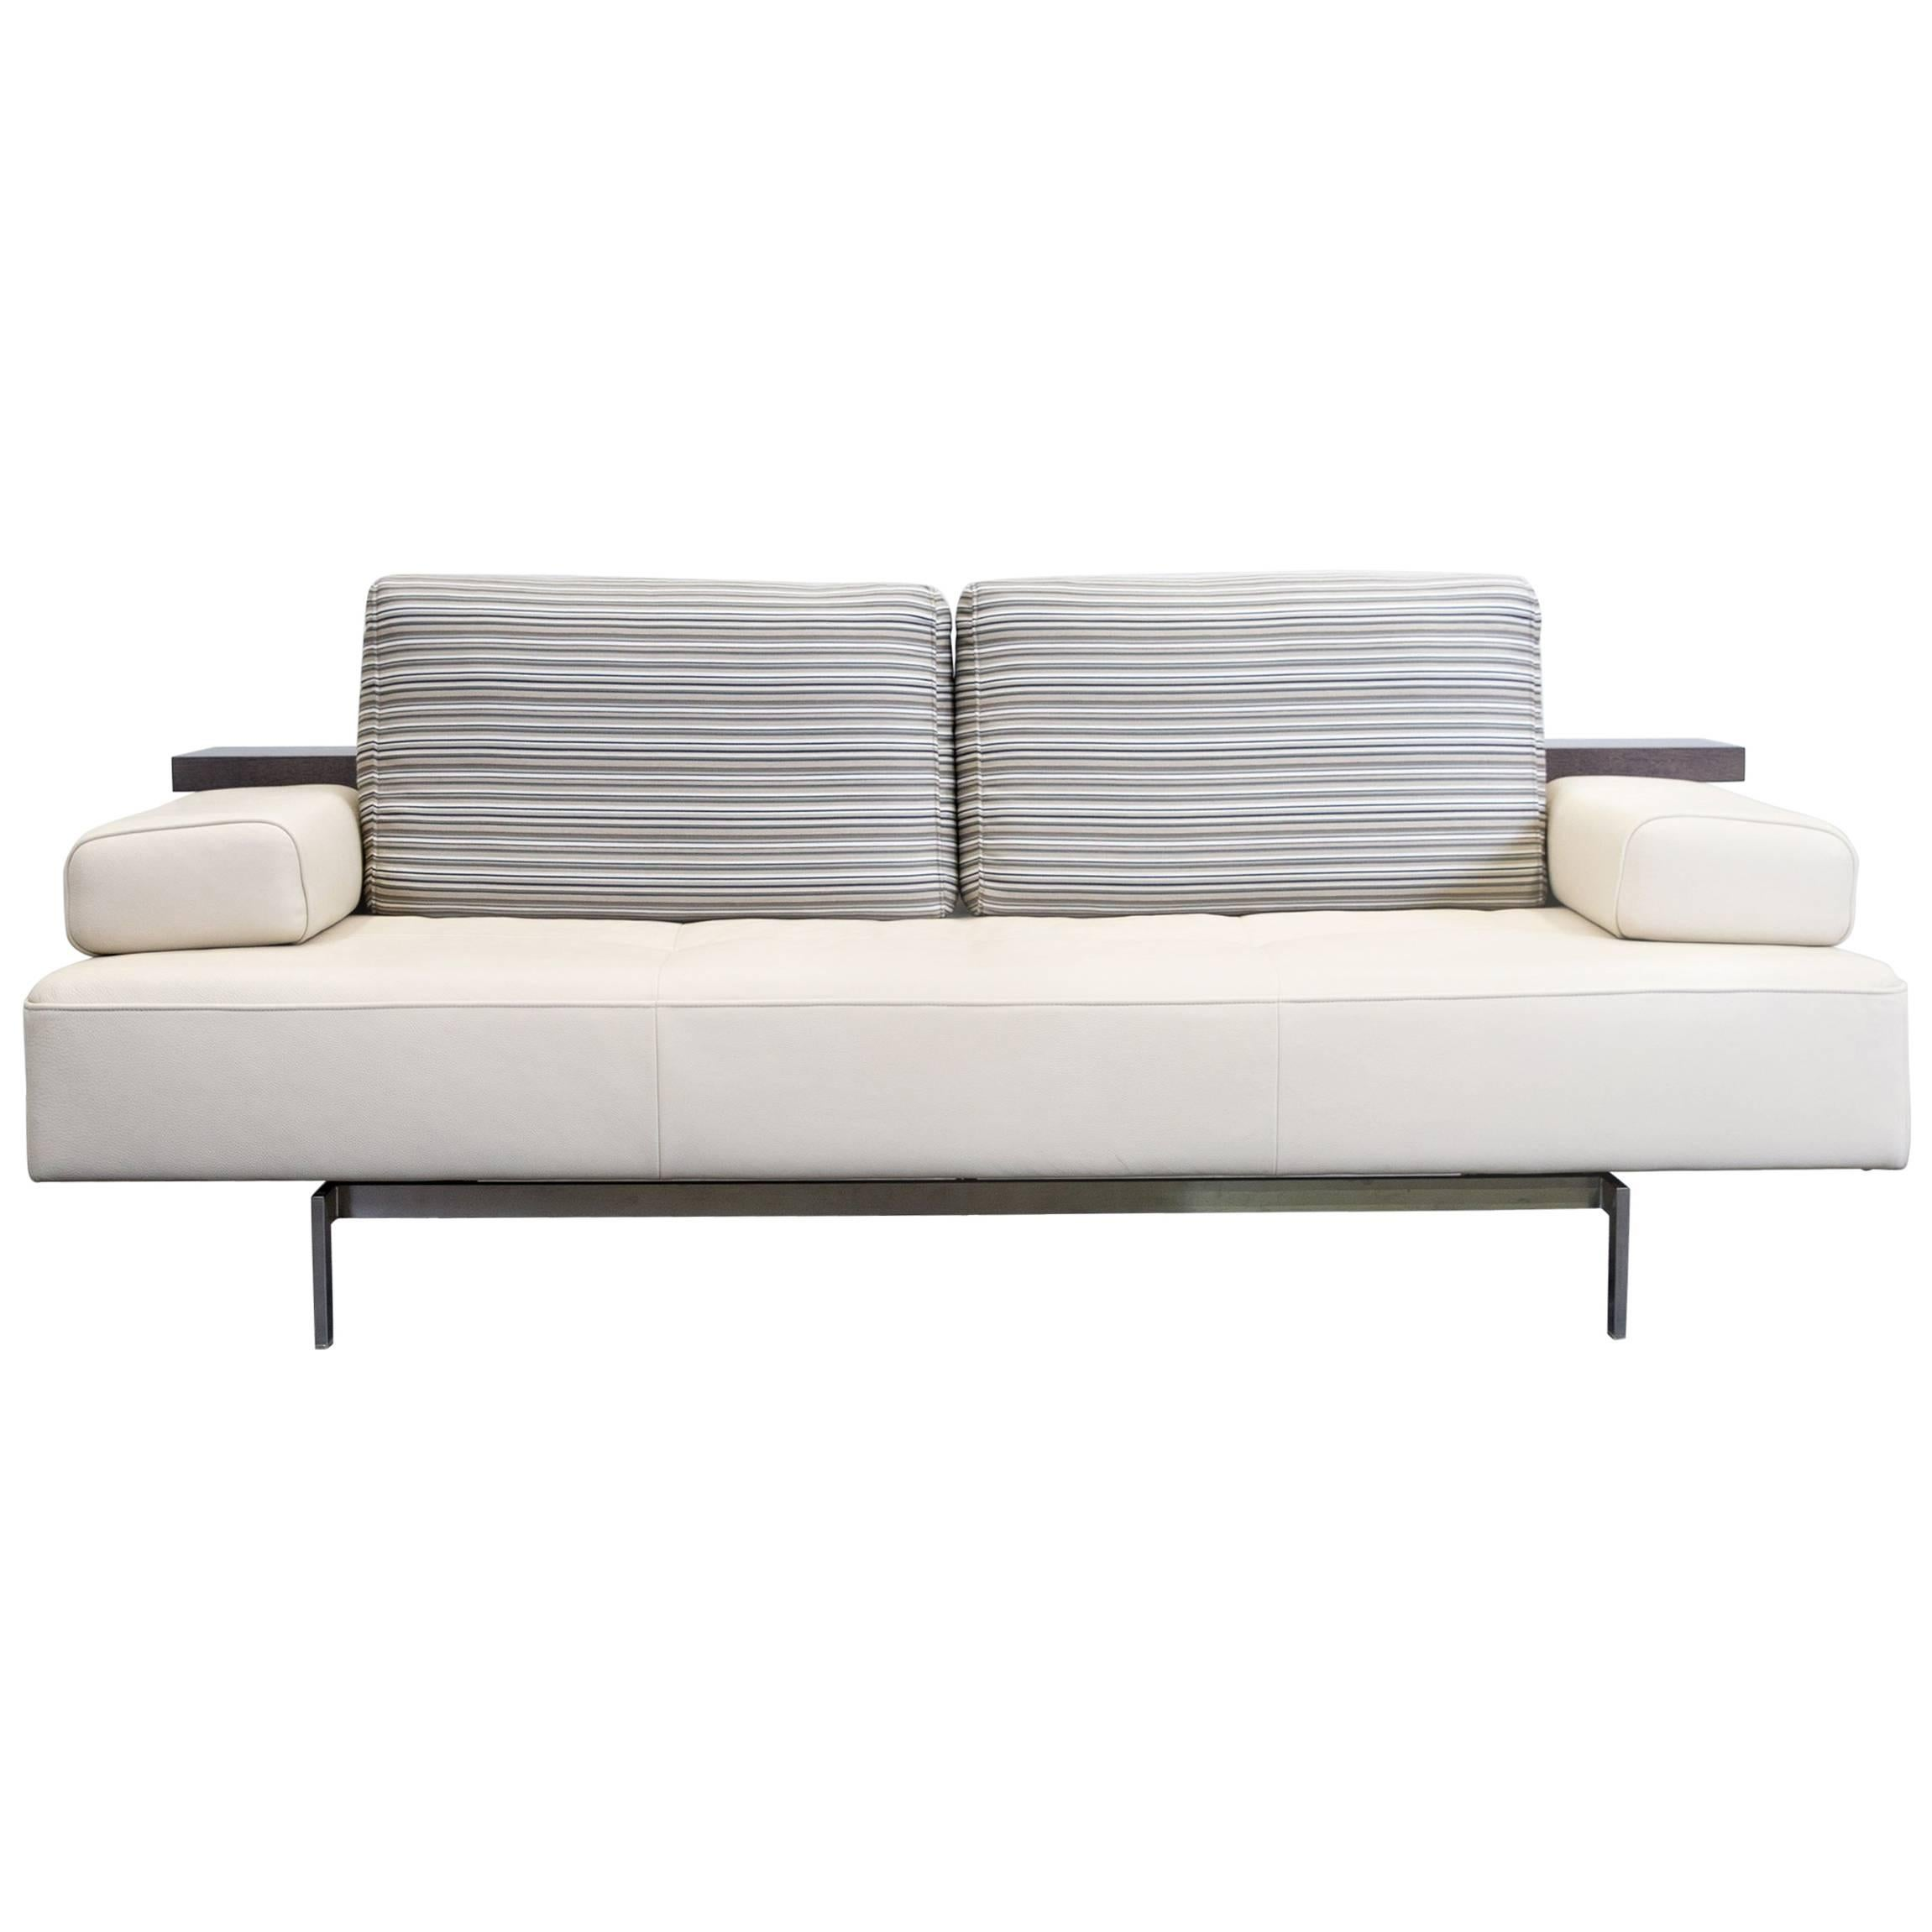 Rolf Benz Sofa Pfister Sofa Rolf Benz Vote For Rolf Benz By Rolf Benz In Interior